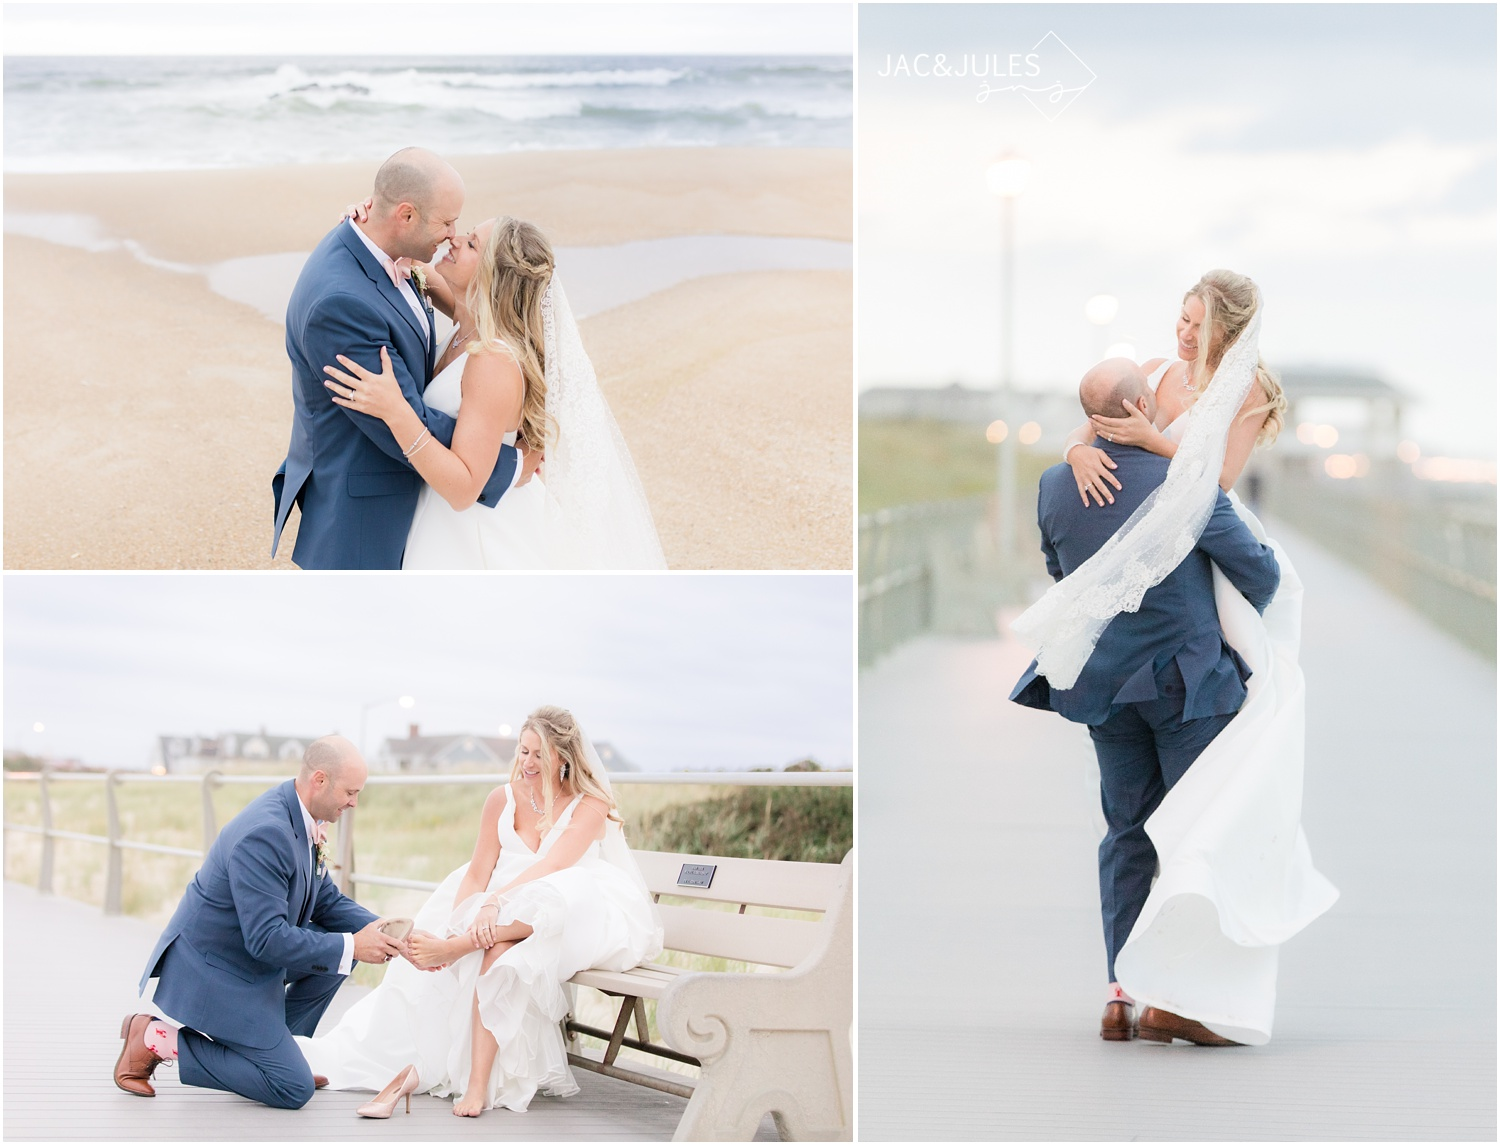 Newlywed photos of bride and groom on the beach in front of The Breakers in Spring Lake, NJ.